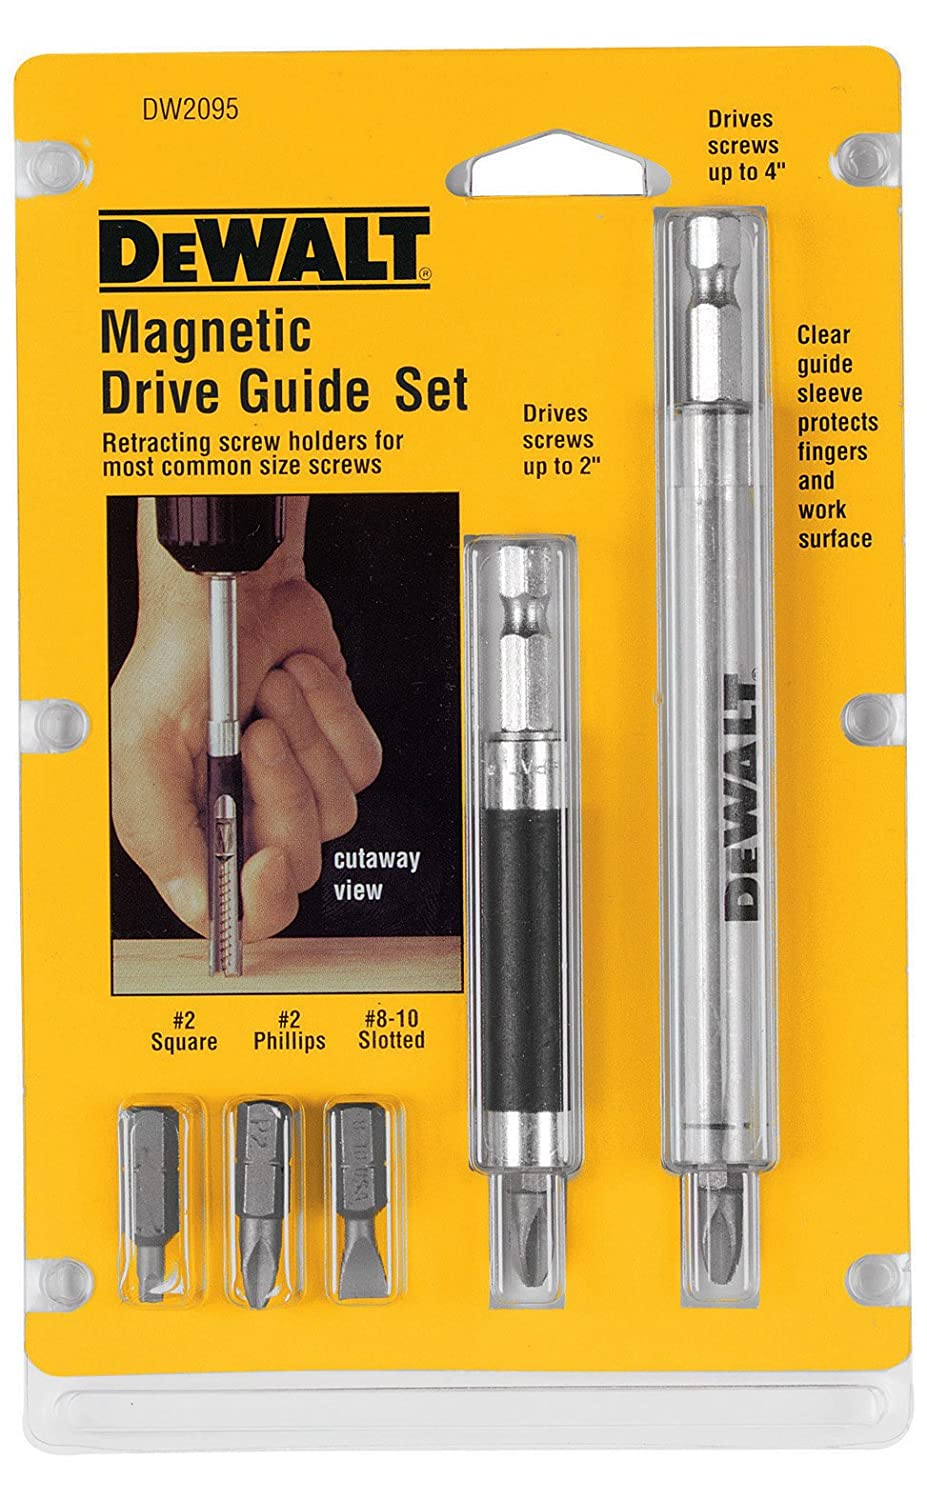 DEWALT DW2095 Drive Guide Set